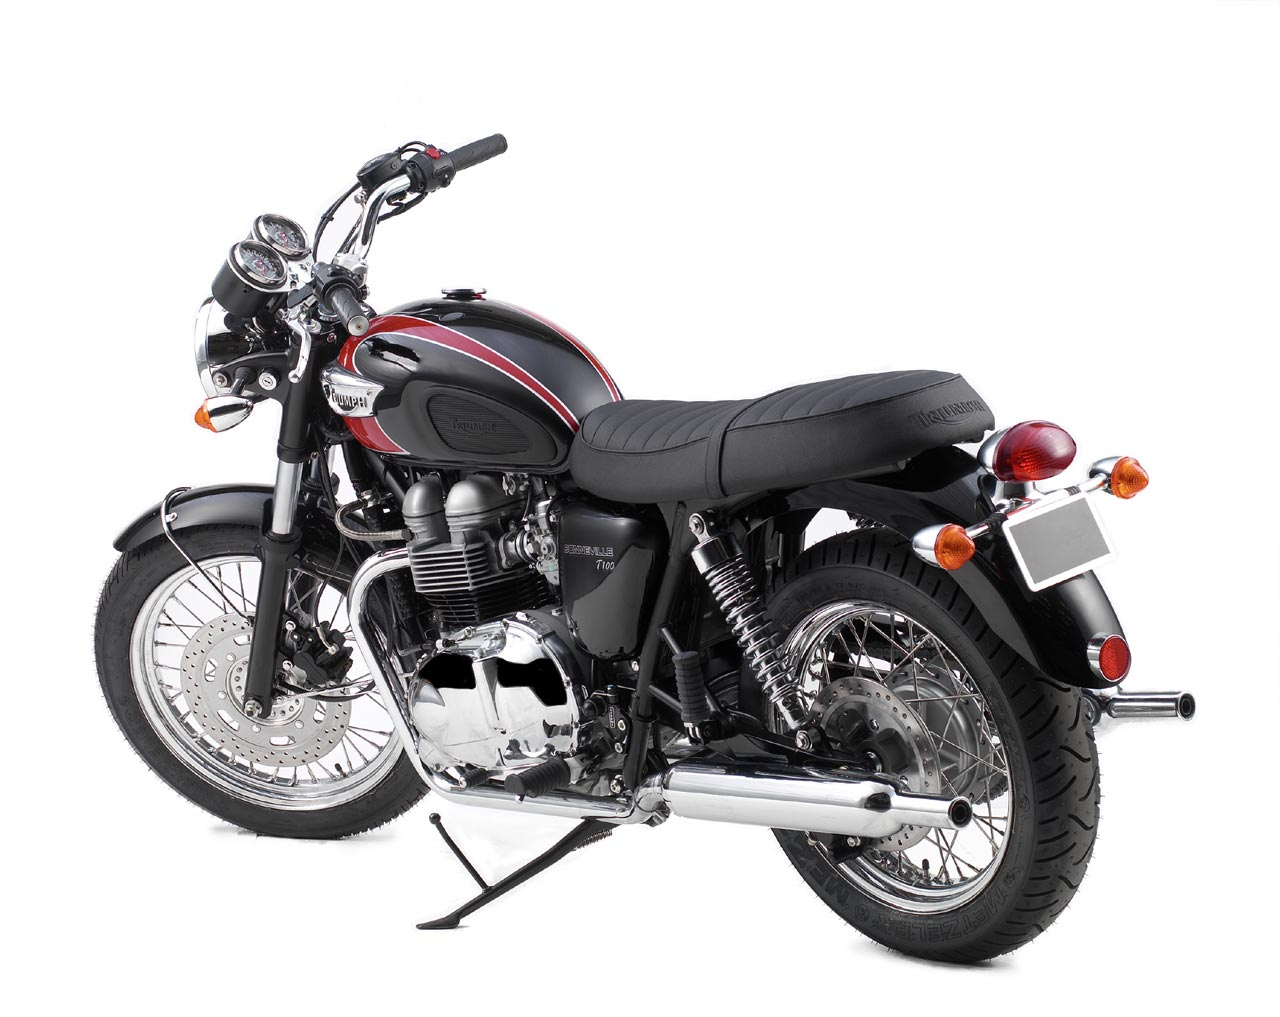 2006 Triumph Bonneville T100 | Top Speed